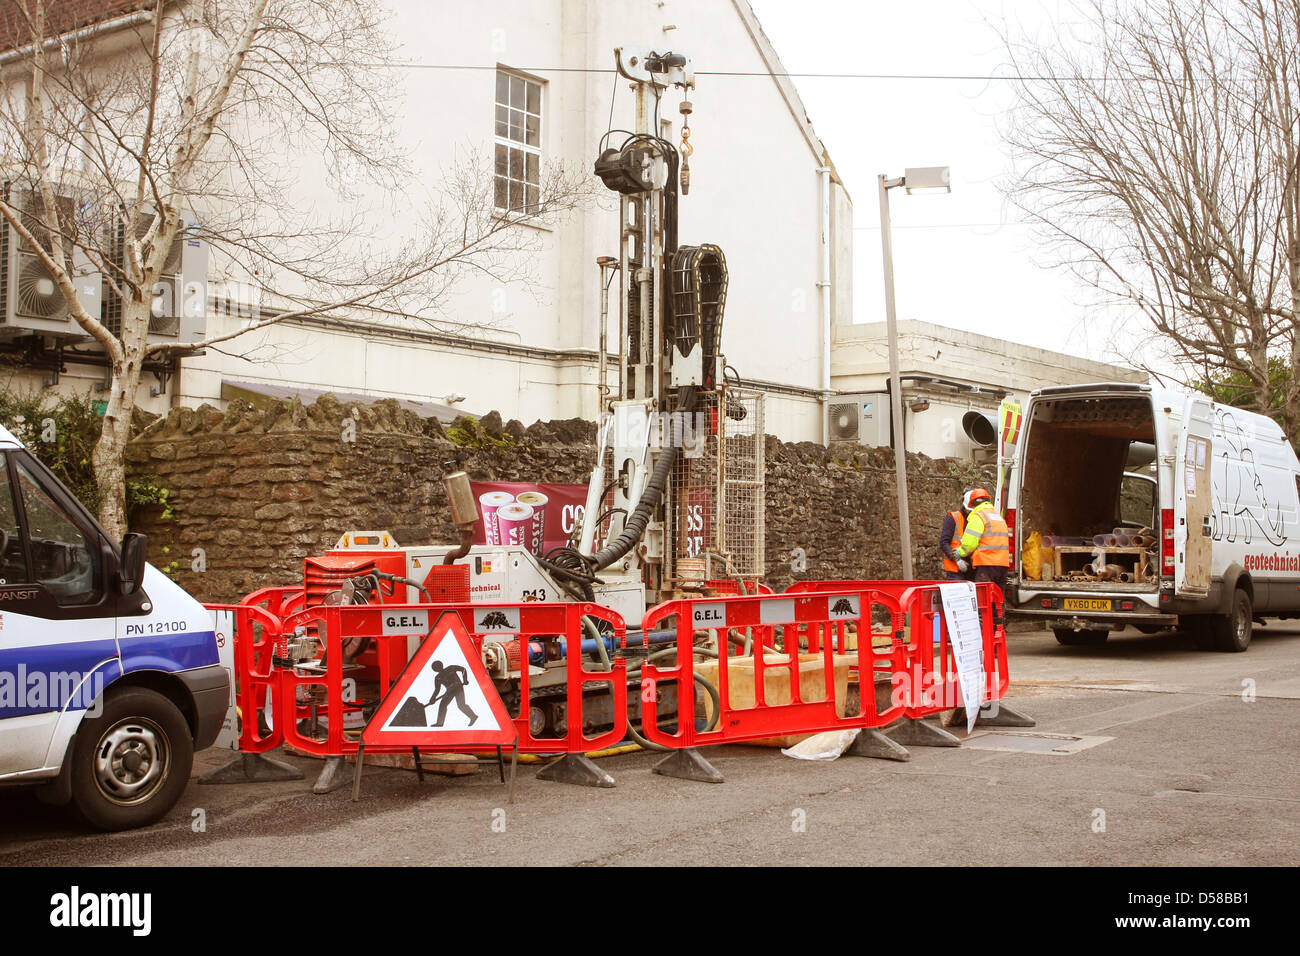 Drilling rig for geotechnical soil surveys, Wells, Somerset, March 2013 - Stock Image